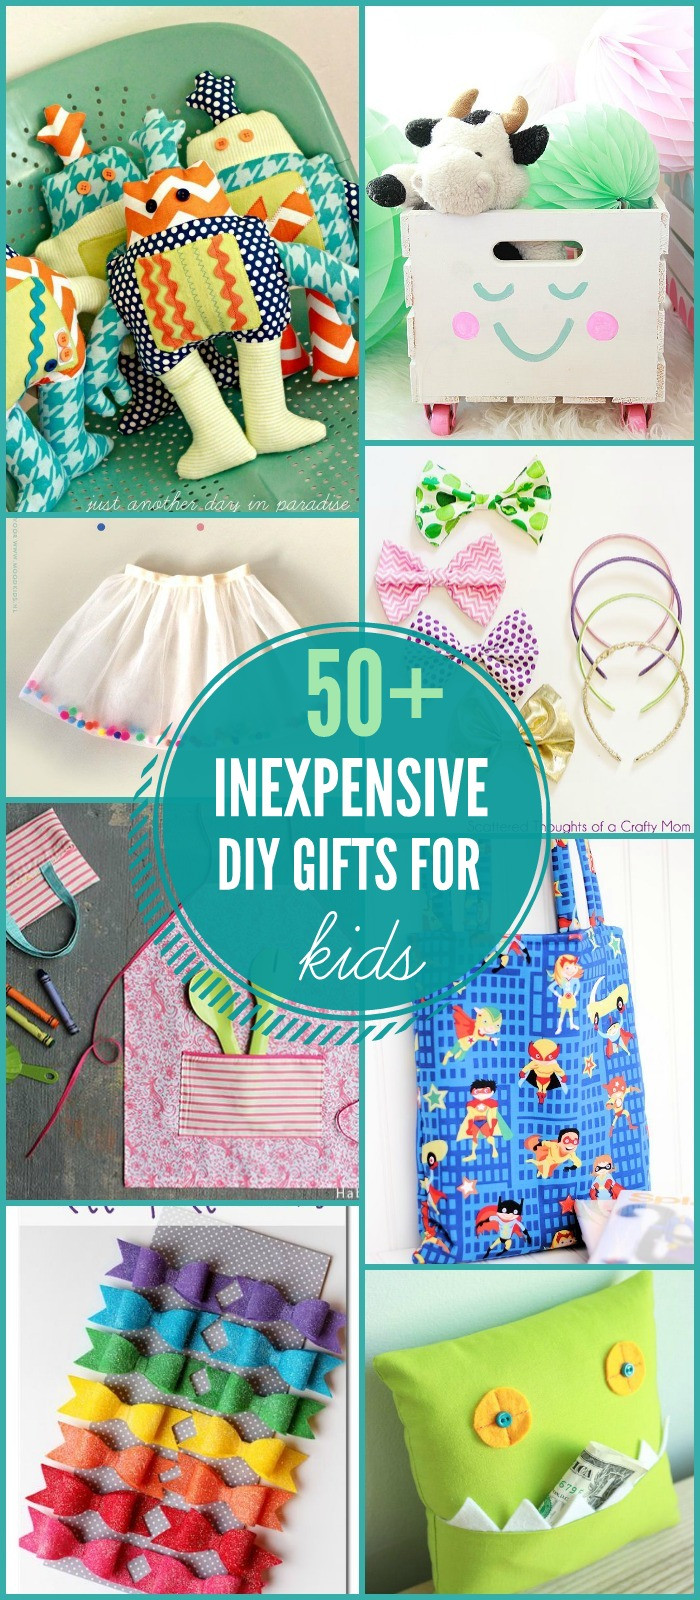 Best ideas about DIY Gift Ideas For Kids . Save or Pin DIY Gifts for Kids Now.